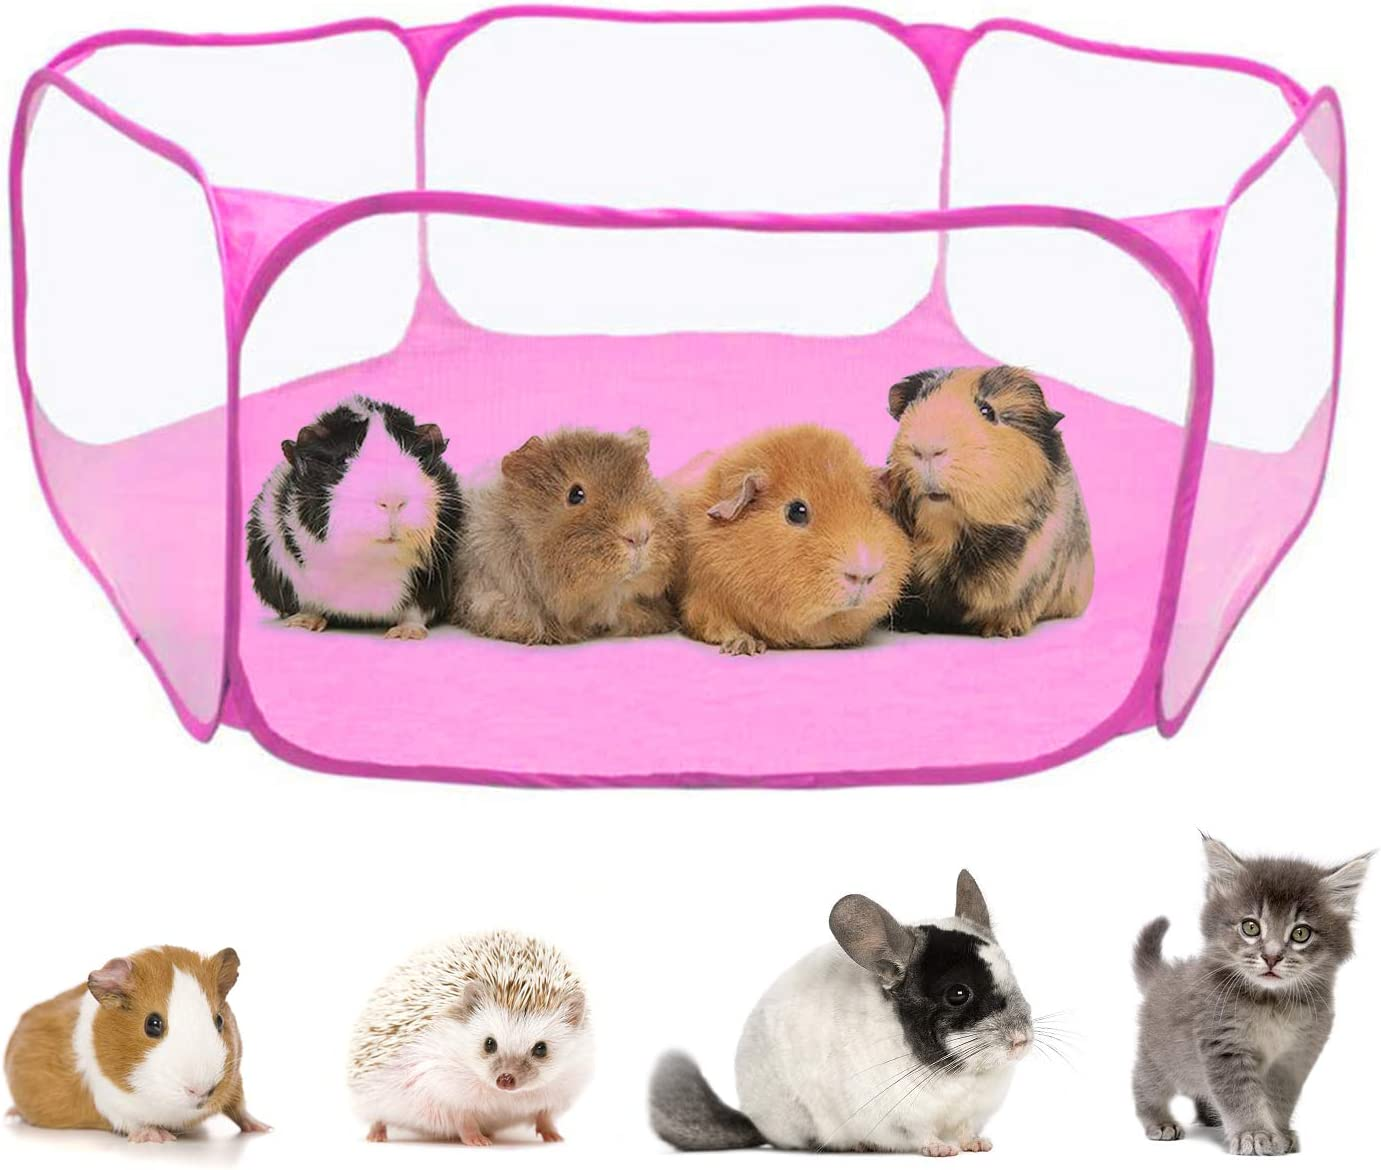 Rypet Guinea Los Angeles Mall Pig Free shipping on posting reviews Accessories Rabbits Hamster C for